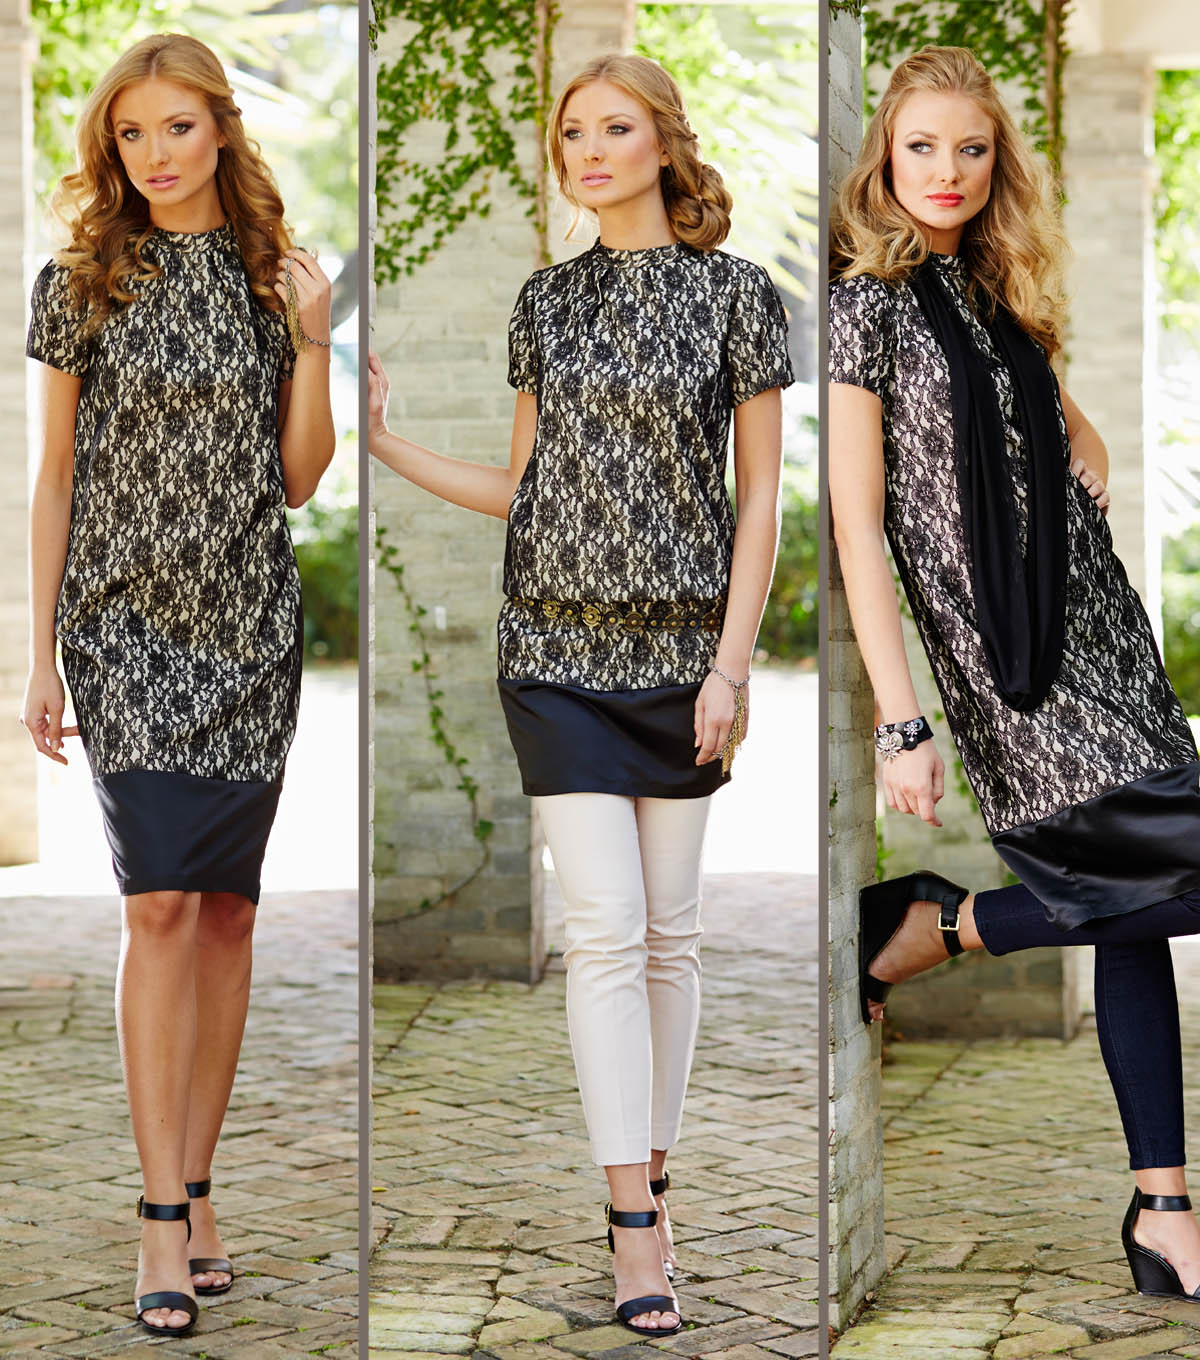 Cream and Black Lace Dress with Accessories | JOANN